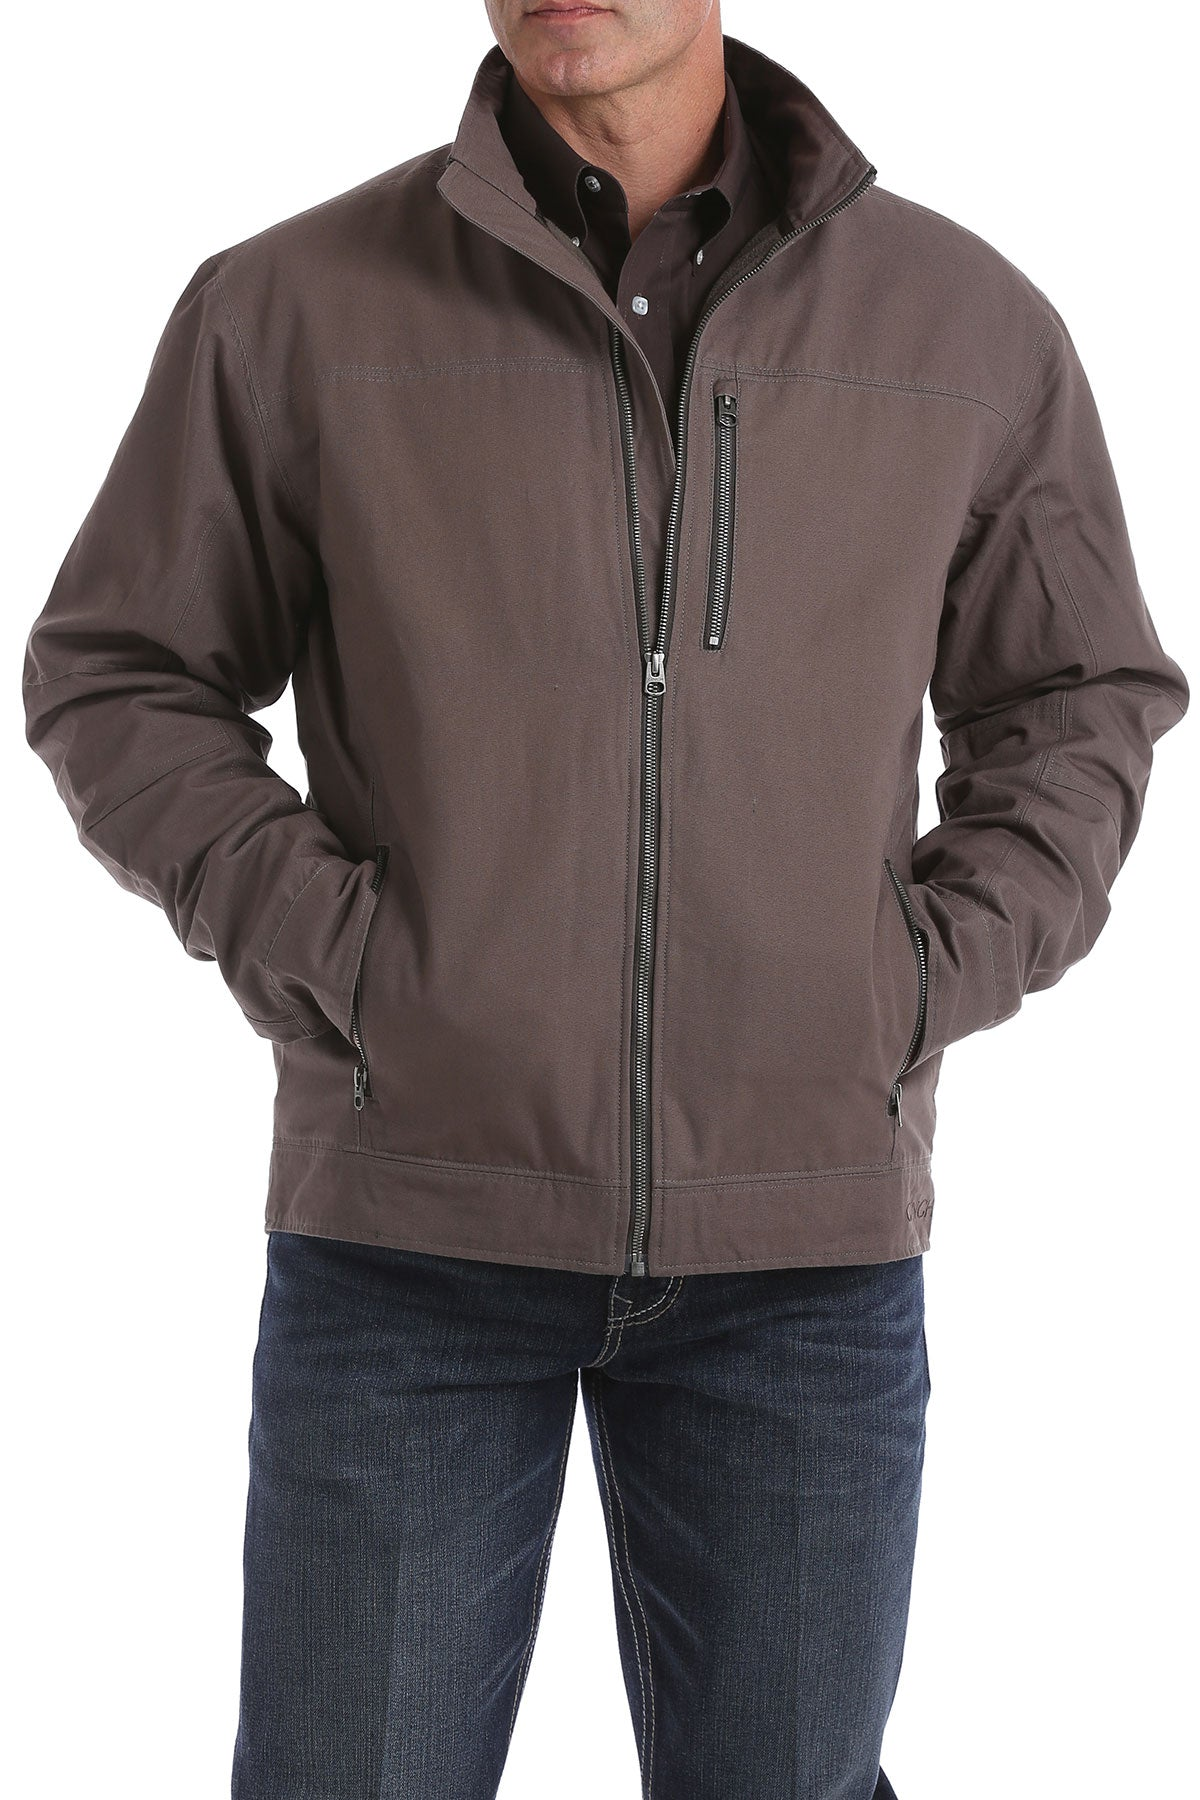 'Cinch' MWJ1505001 - Concealed Carry Canvas Twill Jacket - Stone